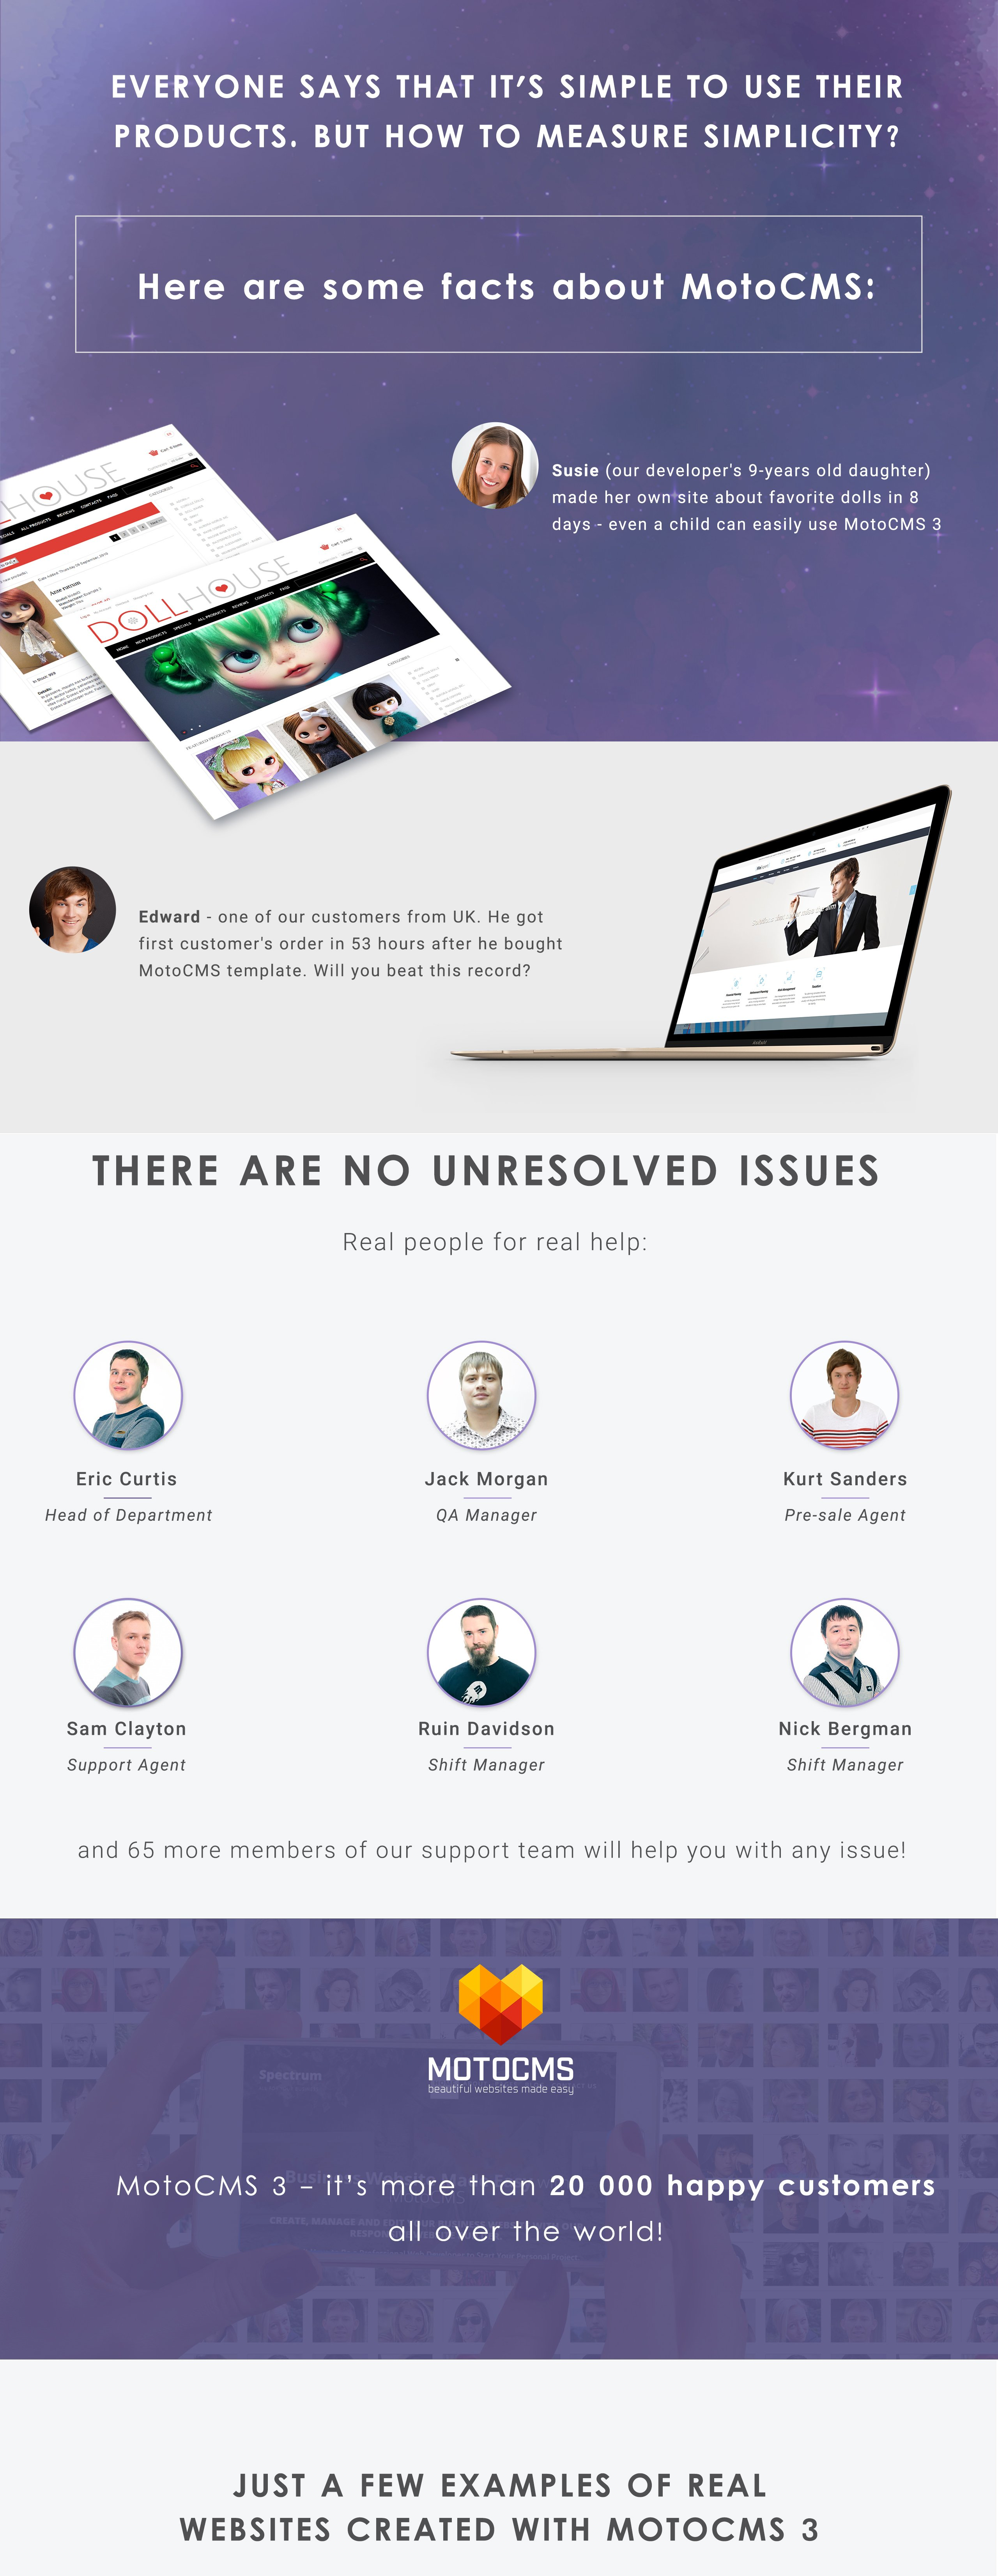 MagieLab - Cosmetic Clinic Moto CMS 3 Template